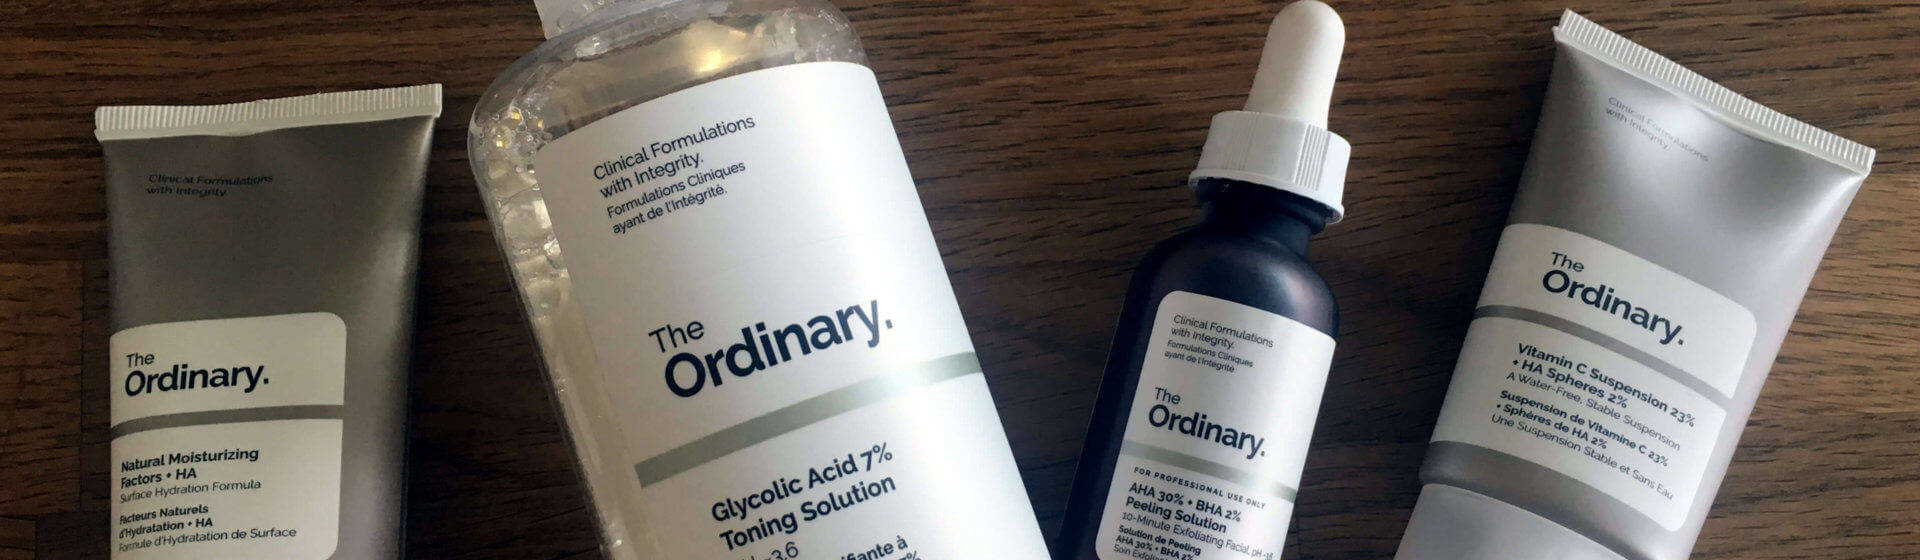 the ordinary top 4